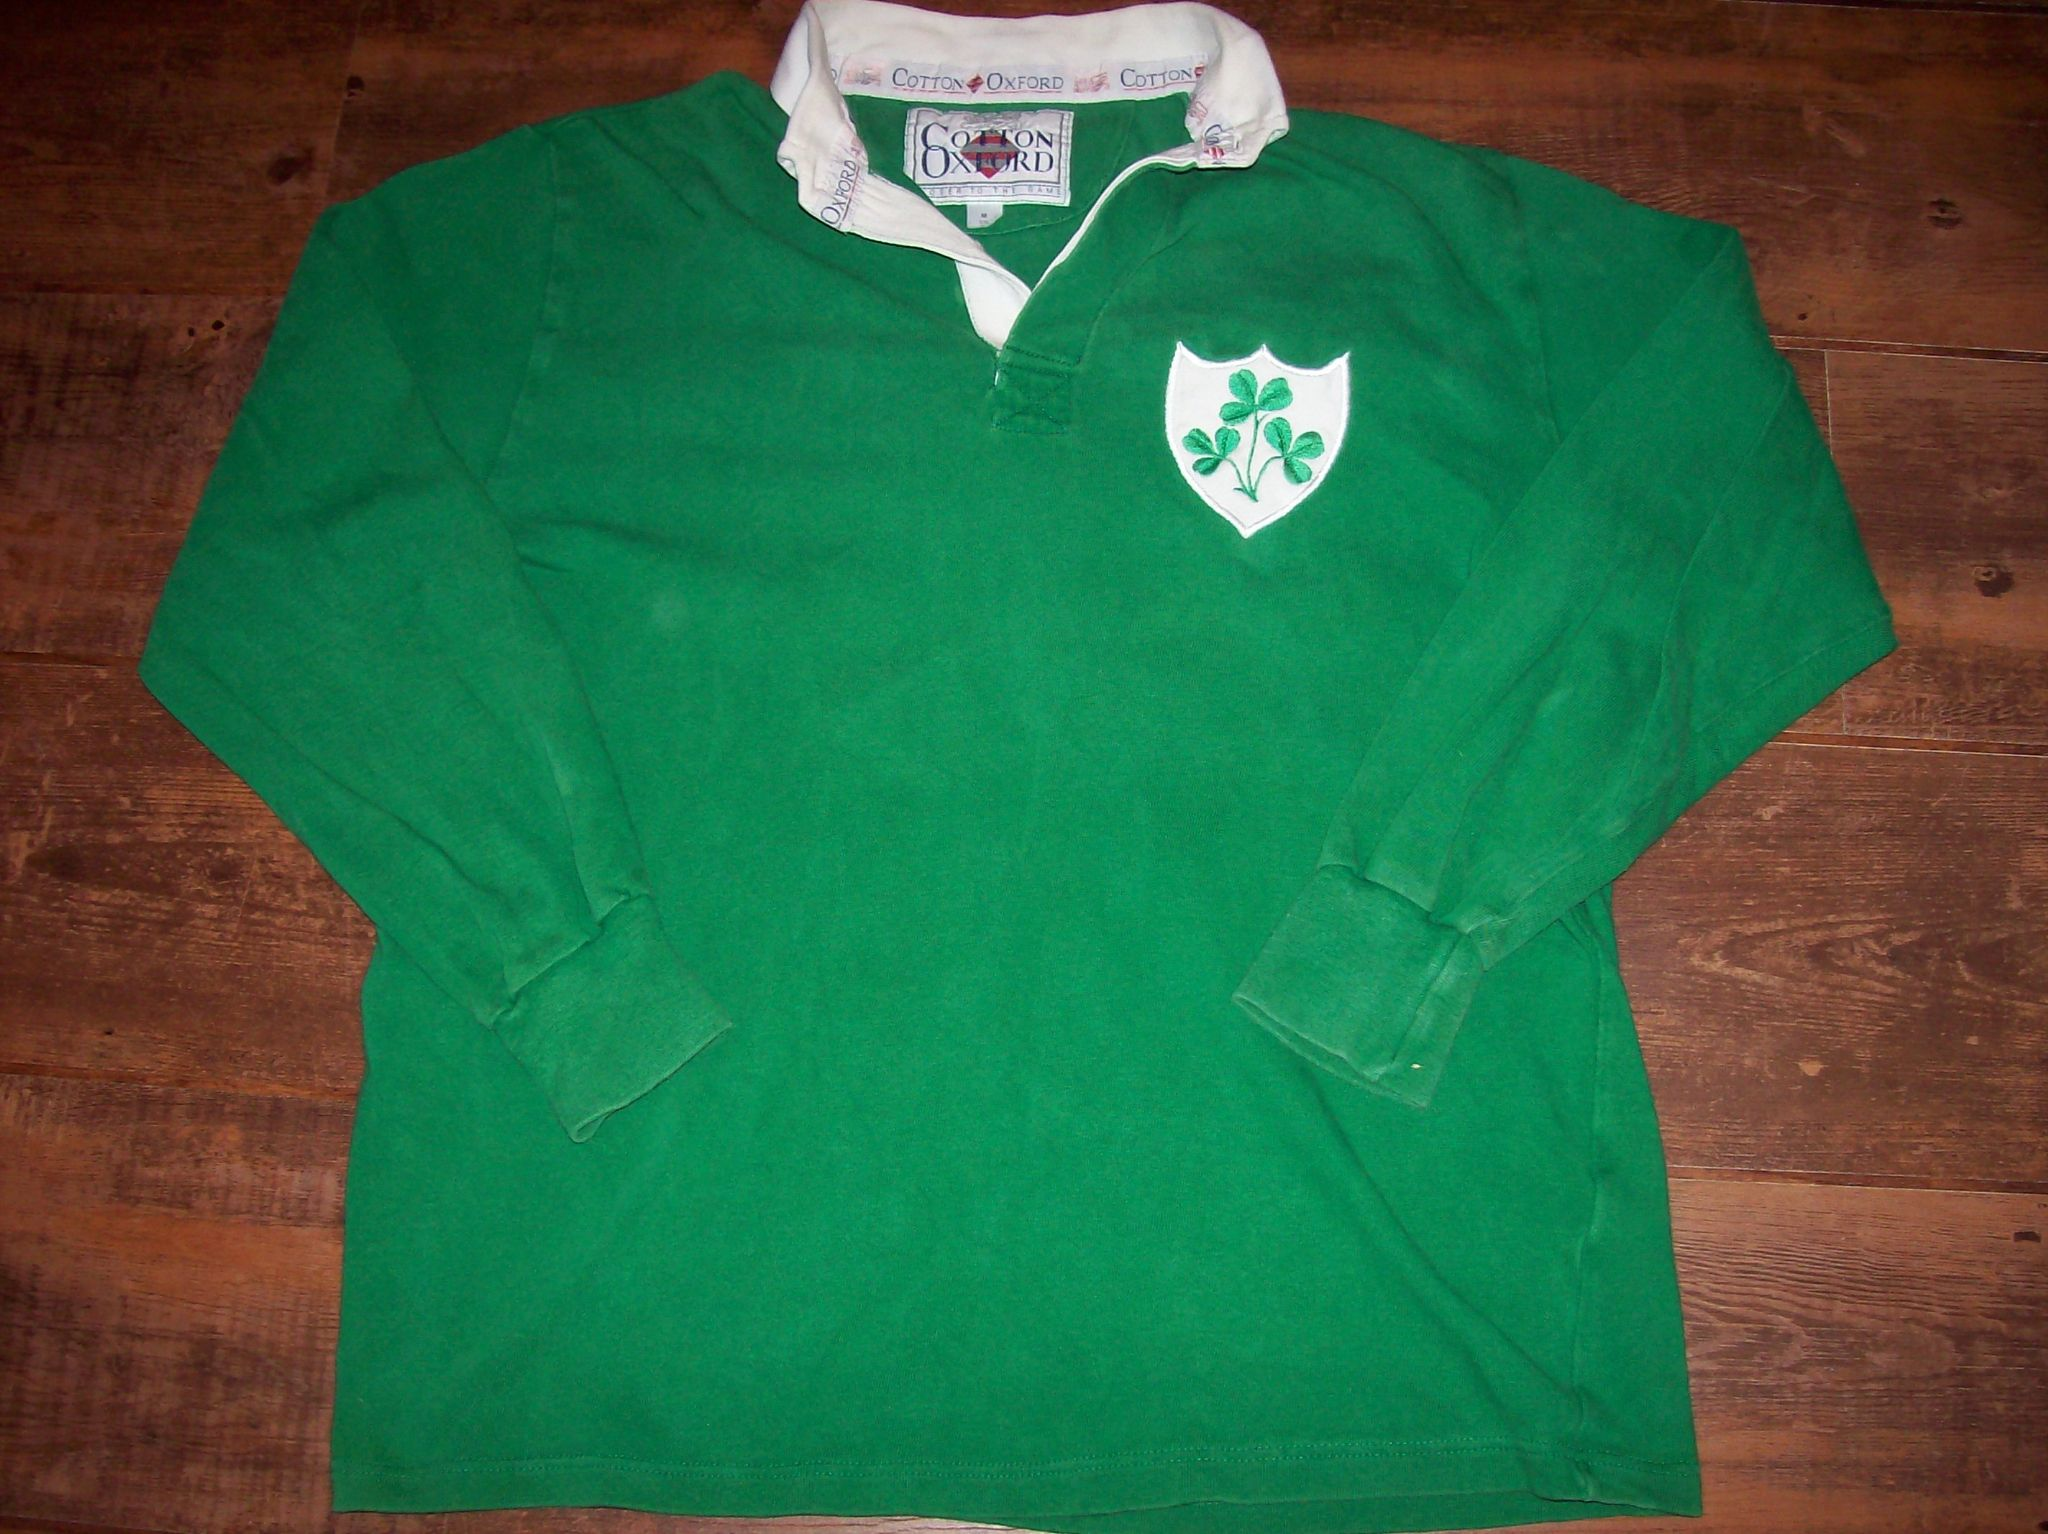 3fdcfbd4e5e 1989 1990 Ireland L/s Rugby Union Shirt Adults Medium Jersey